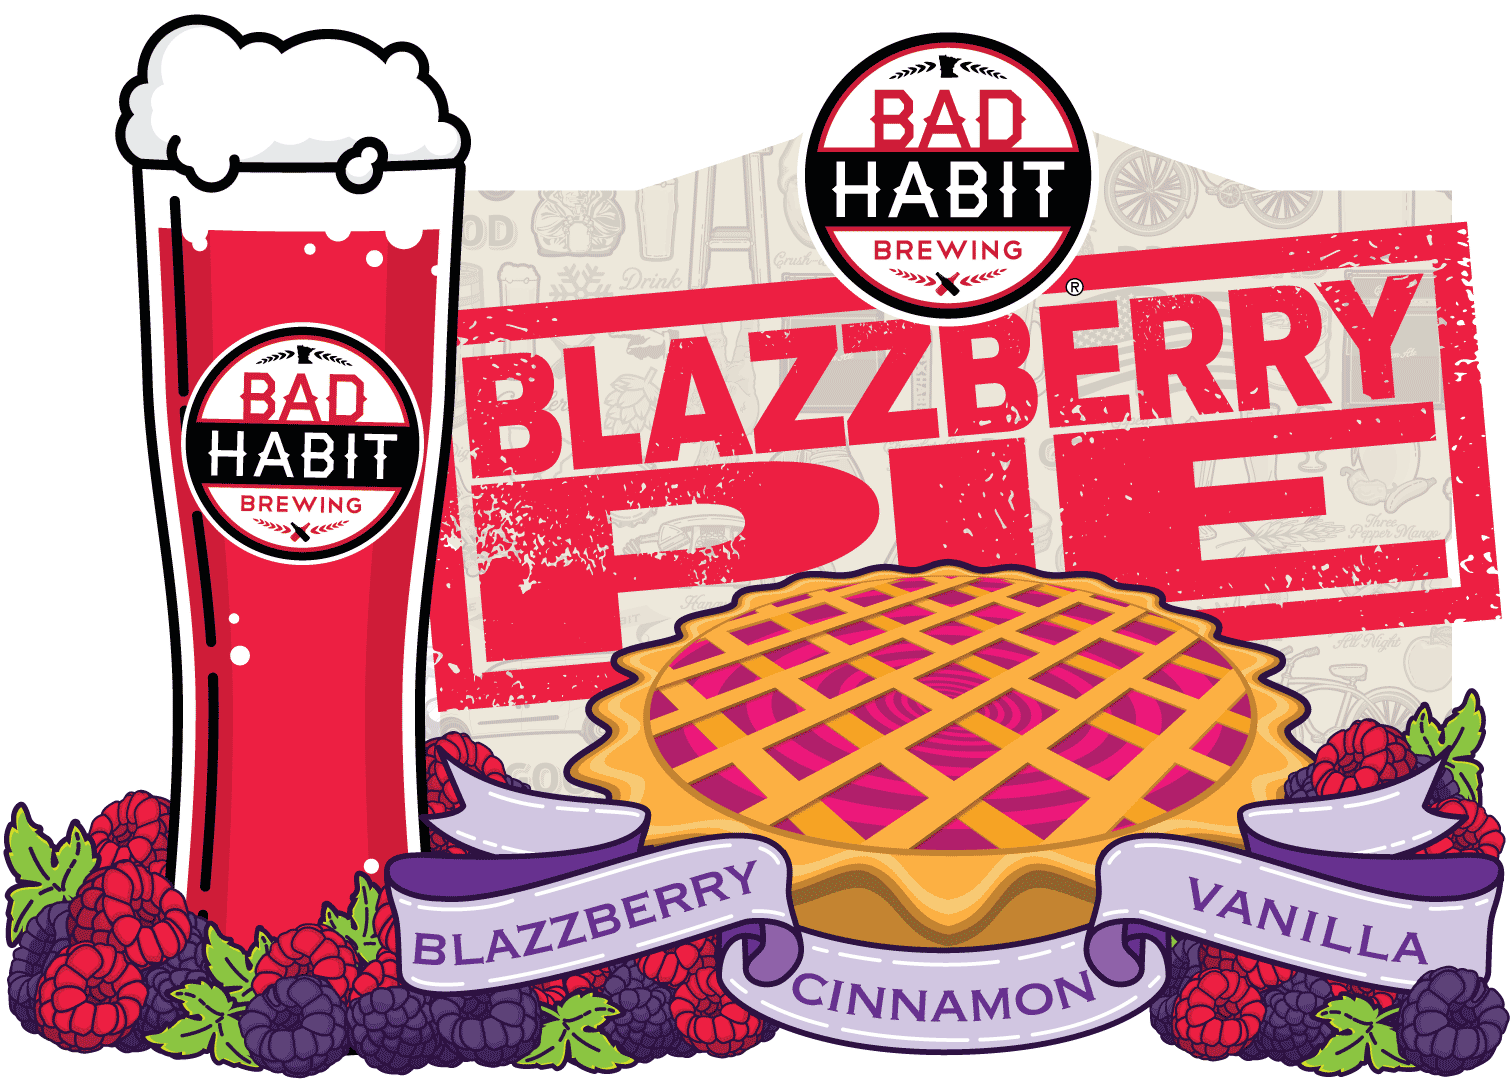 BLAZZBERRYPIE - Pastry Ale | 4% ABVThis one time, at the brewery, we took our blazzberry sour and infused it for this delicious pastry ale.You'd be surprised with what you can do with some well placed vanilla and cinnamon.